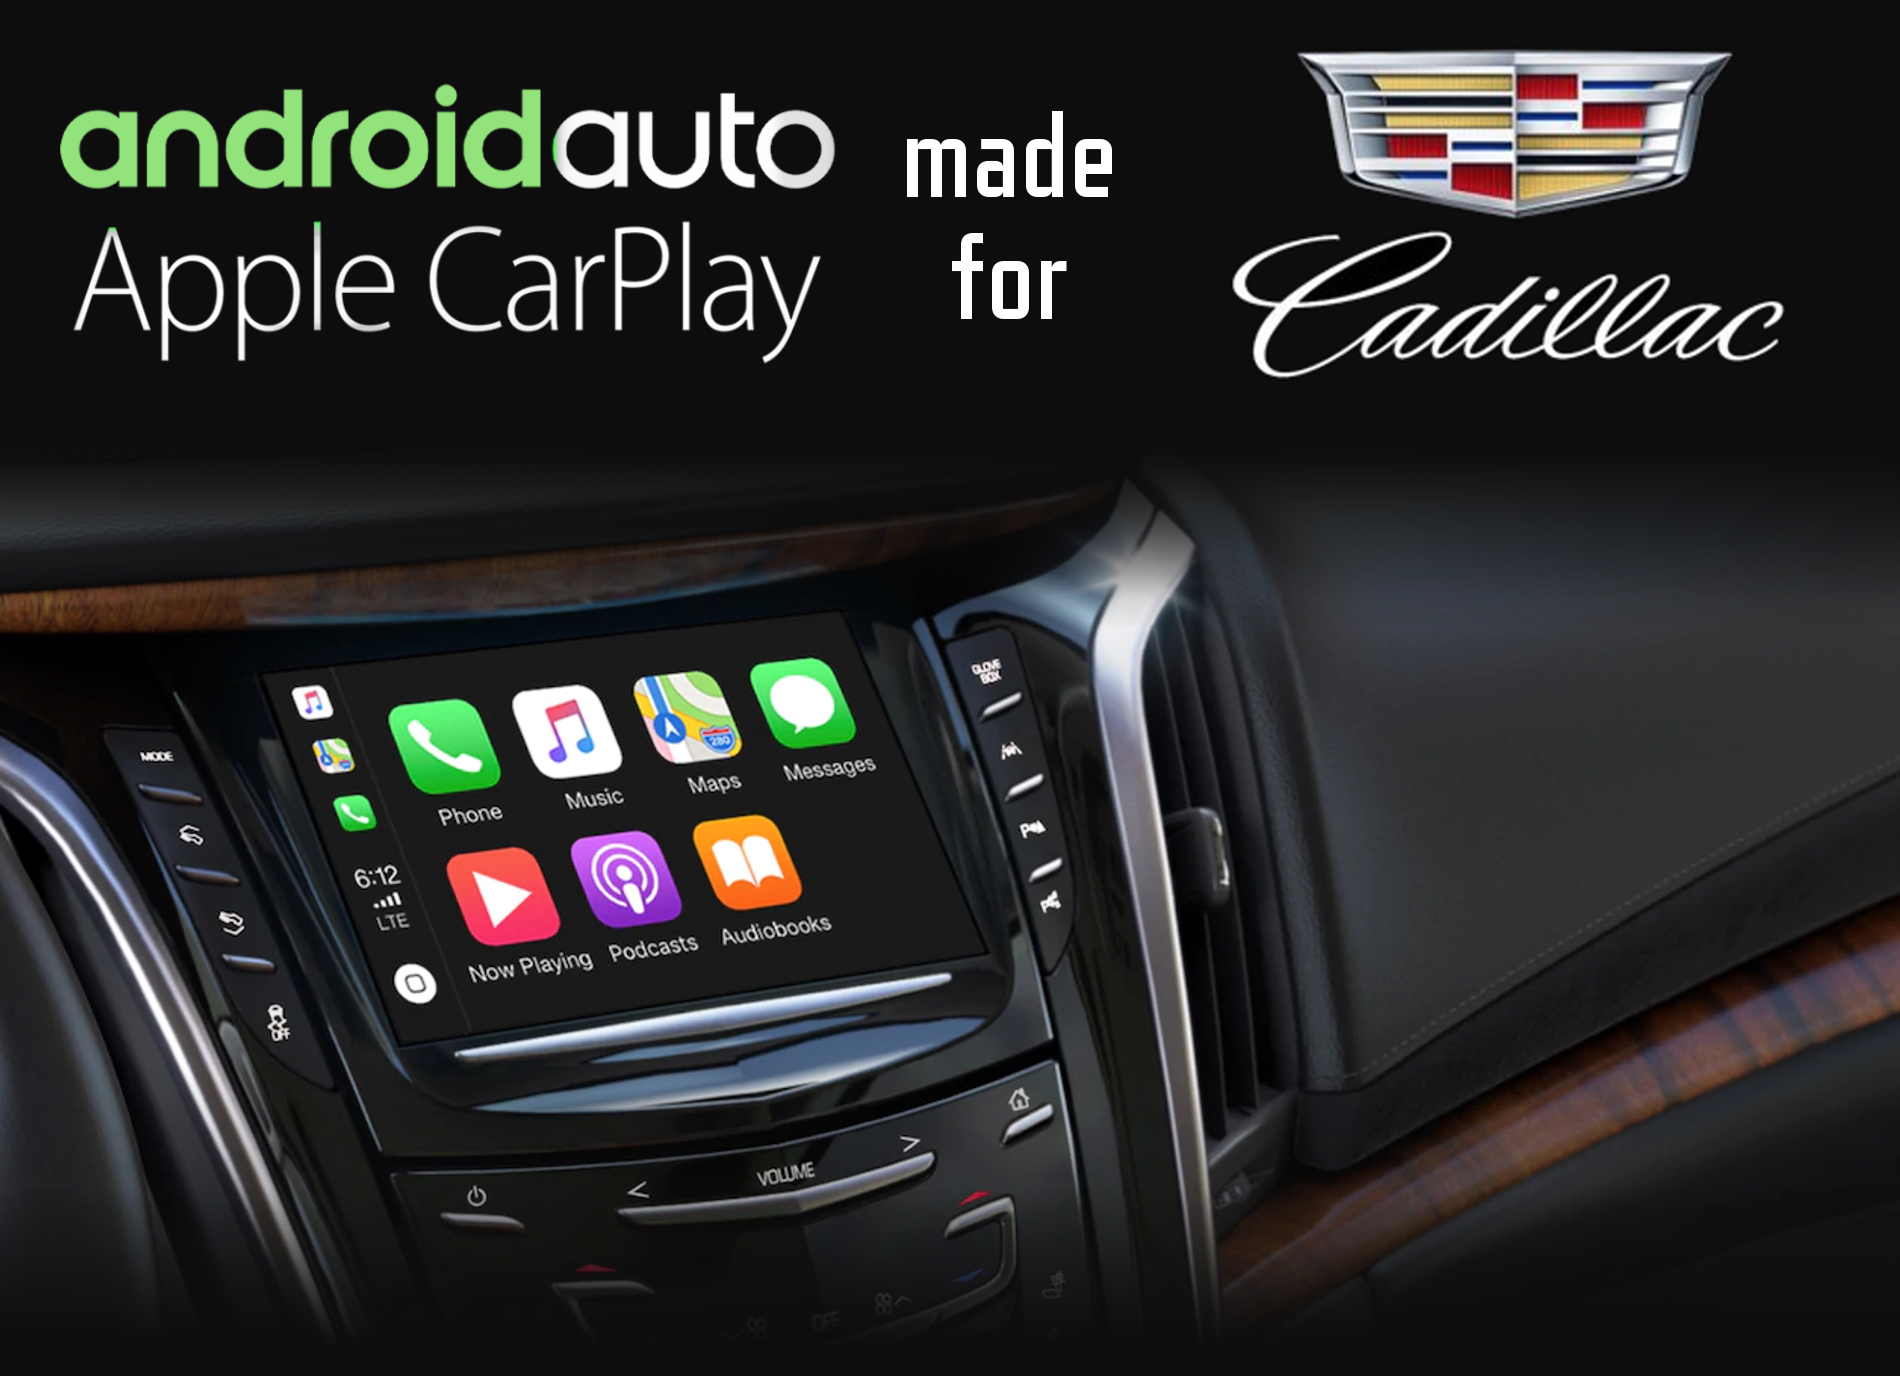 Aftermarket Apple Carplay, Android Auto integration for Cadillac factory radio screens for AST, CT6, CTS, Escalade, SRX, XT4, XT5, XTS